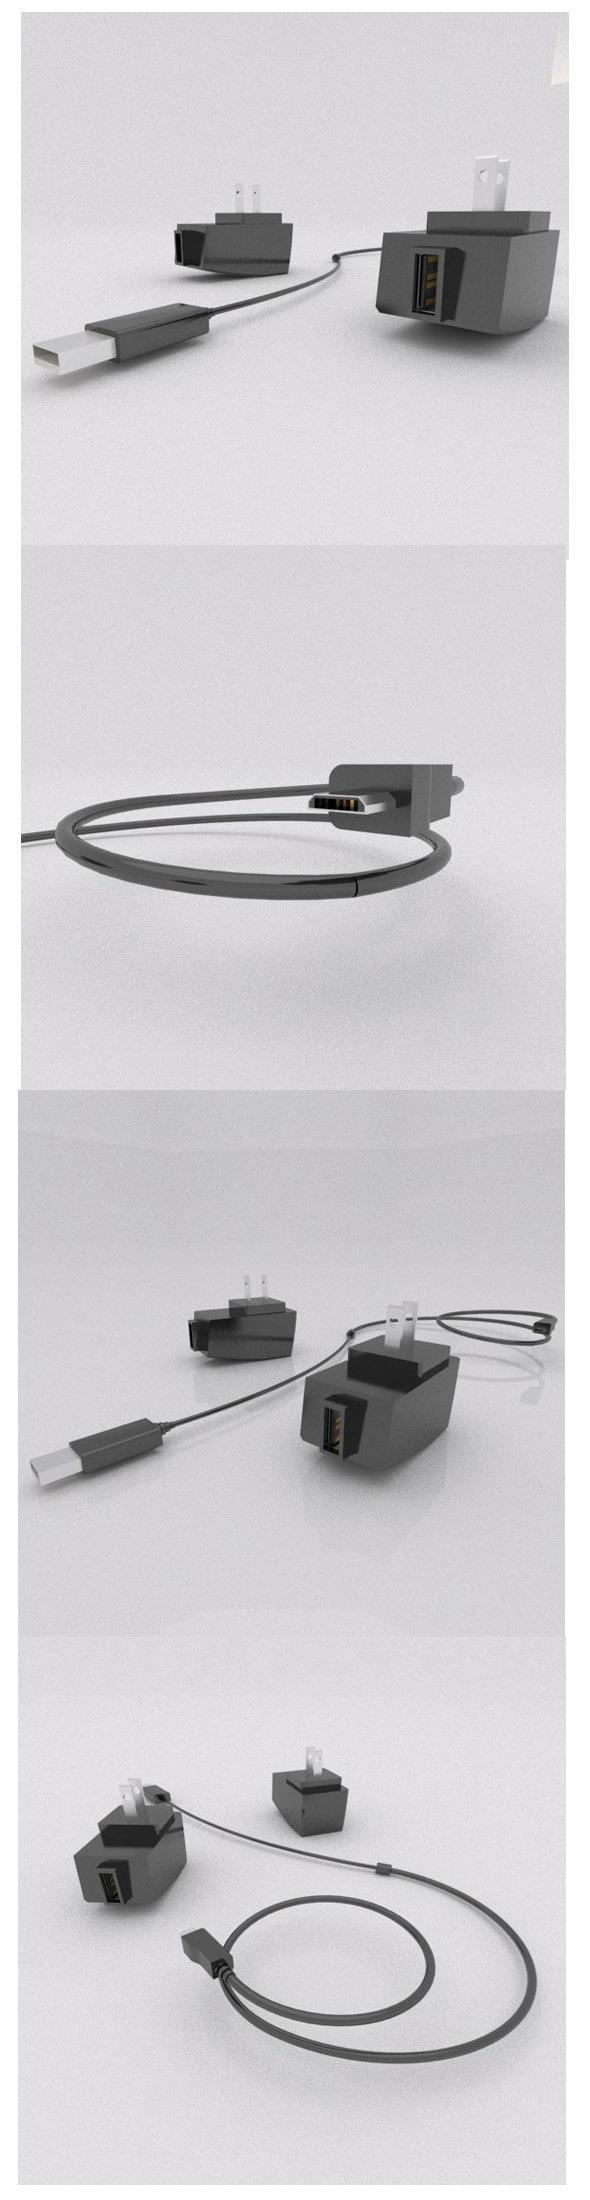 USB power charger - 3DOcean Item for Sale